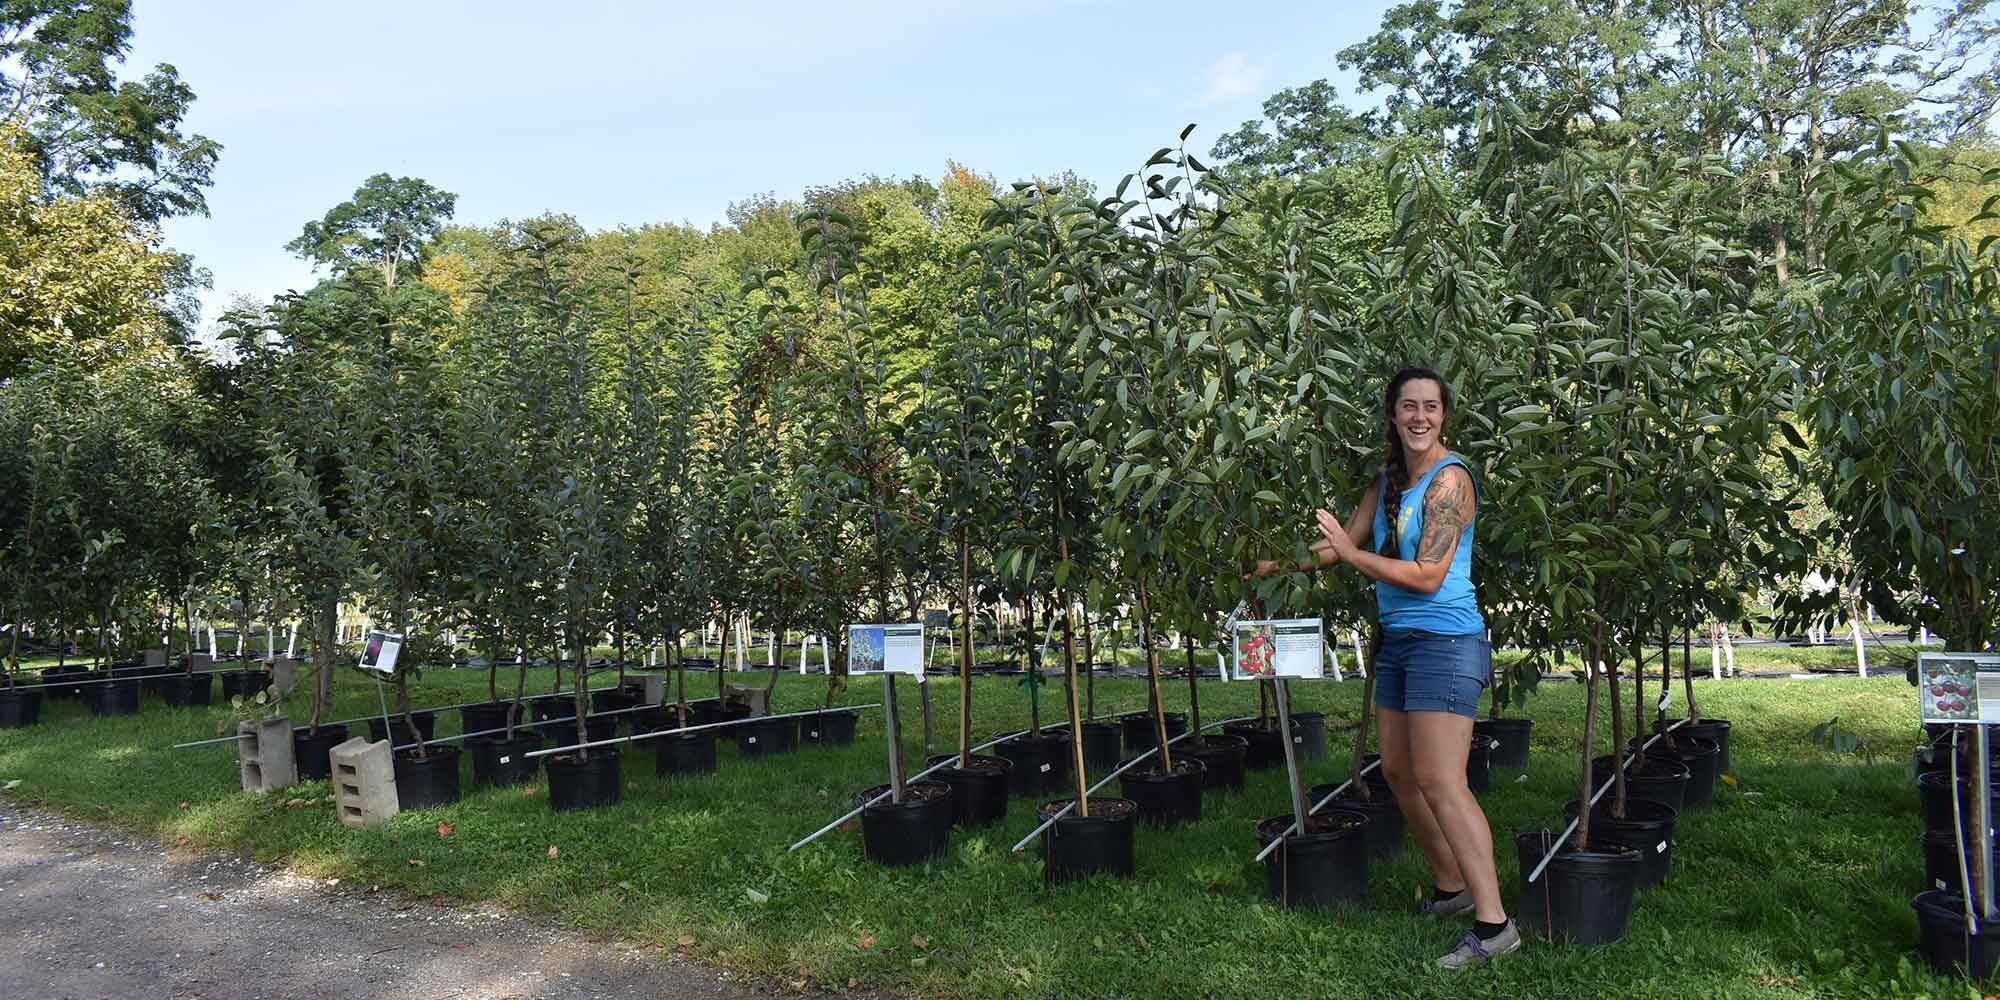 Team member with fruit trees in 7-gallon containers